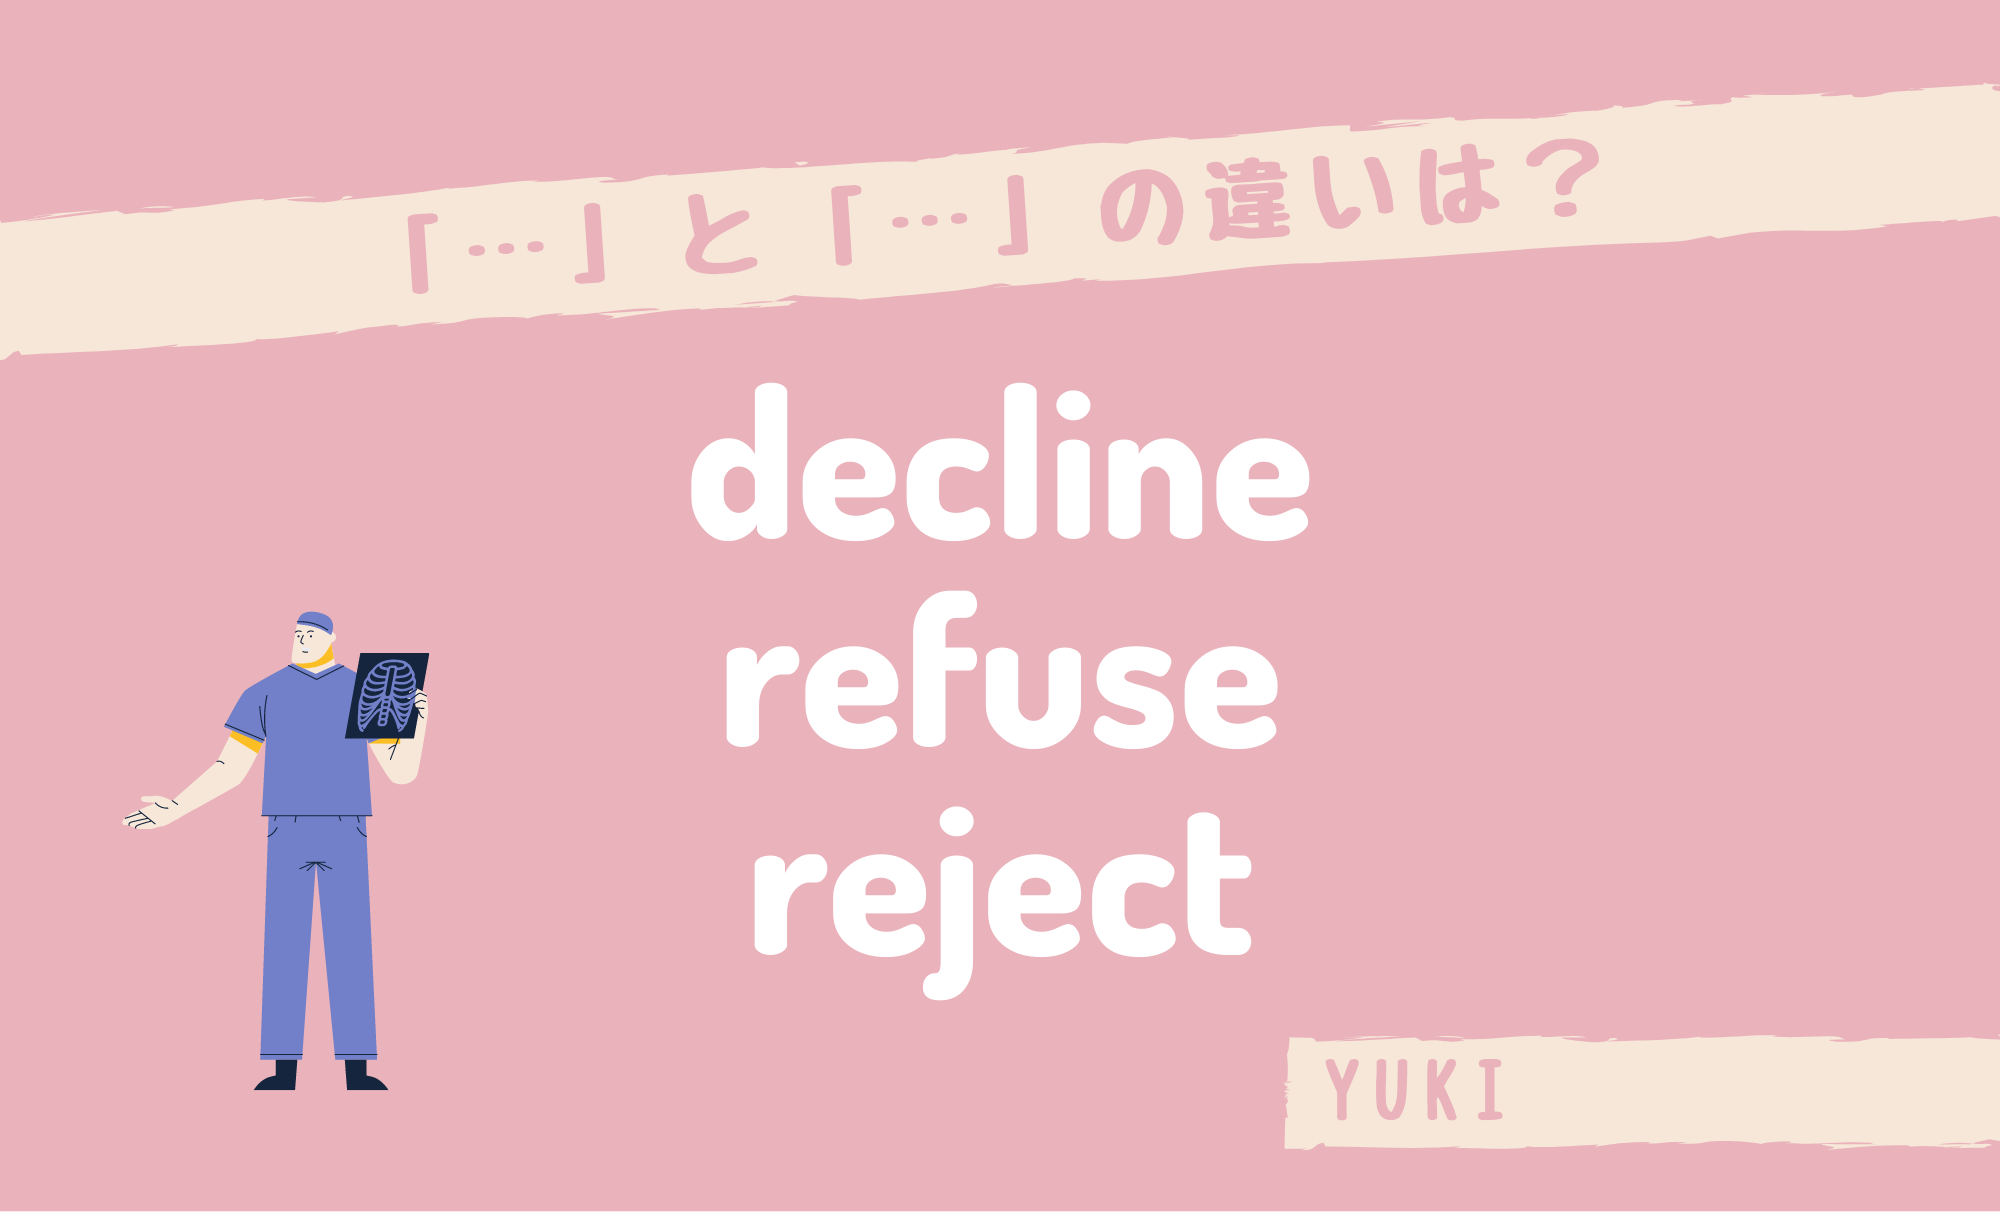 「decline」「refuse」「reject」の違い